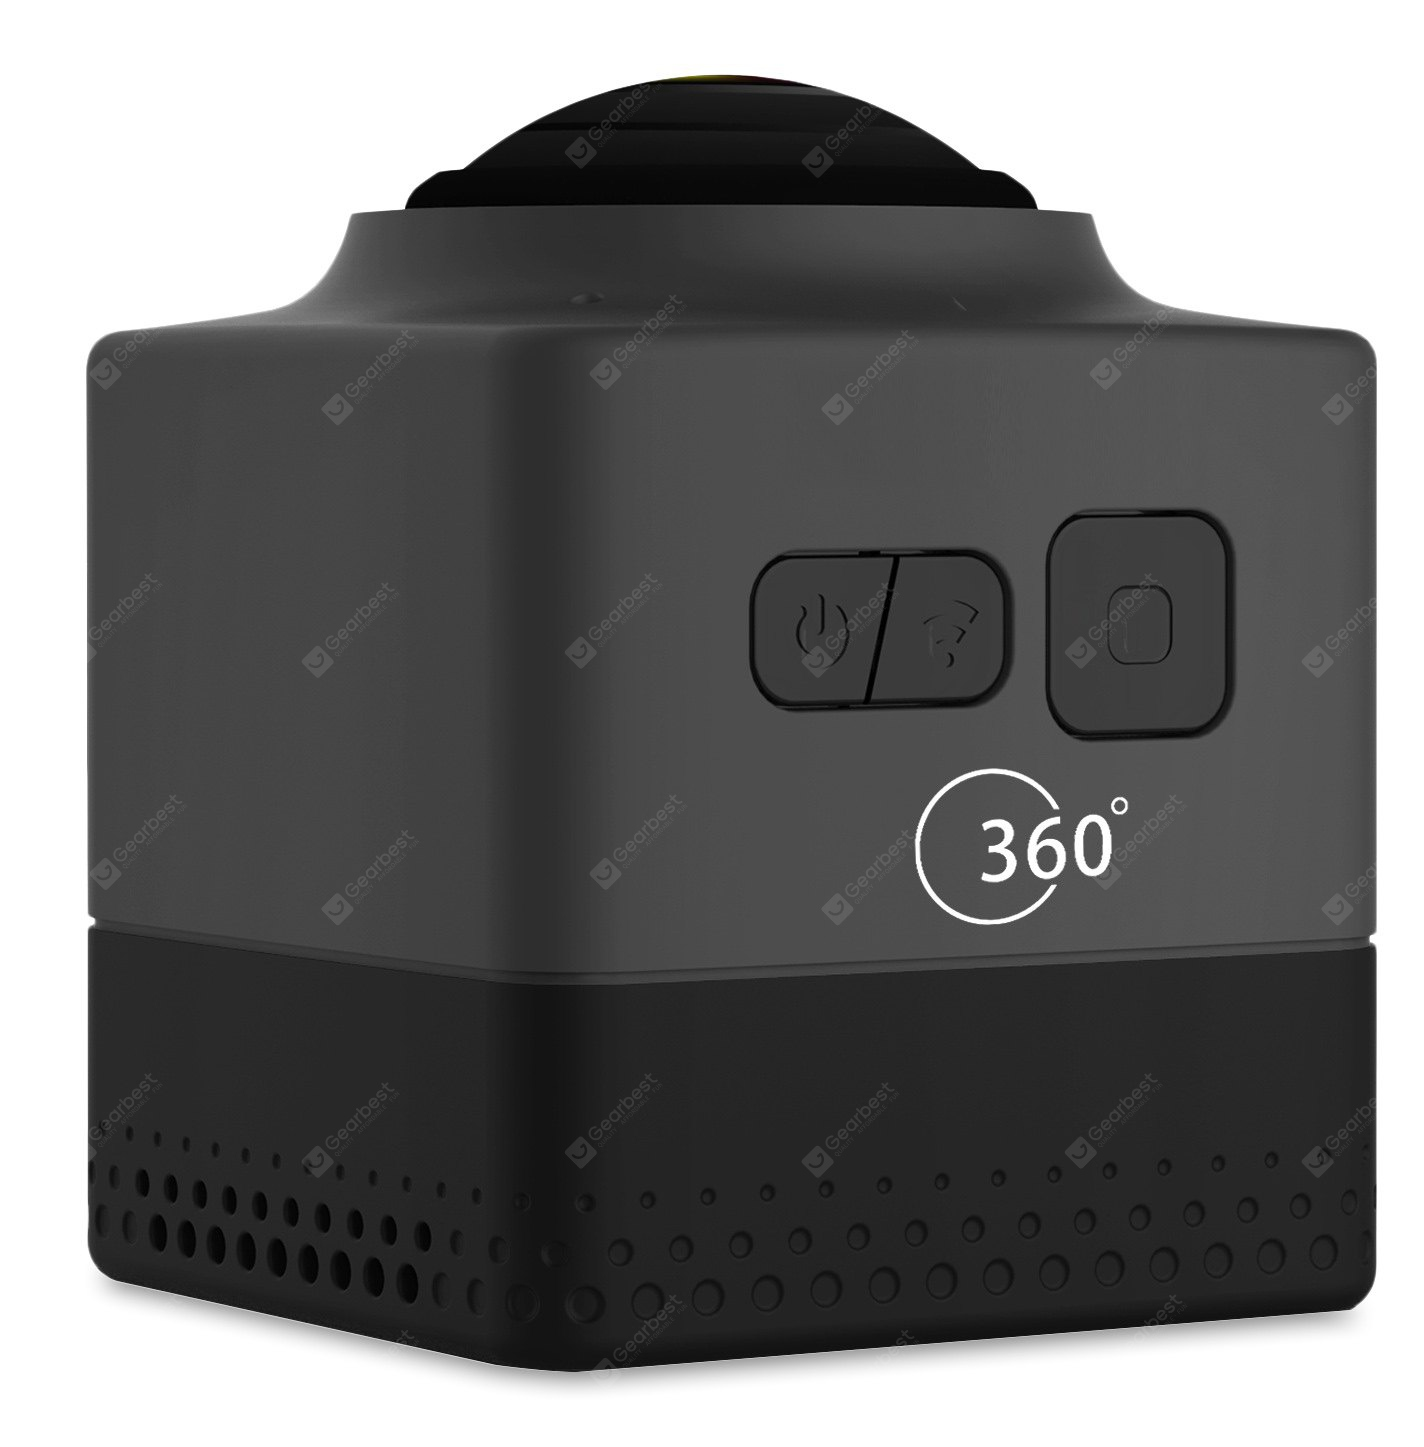 Cube 360 WiFi 360 Degree Wide Angle Action Camera